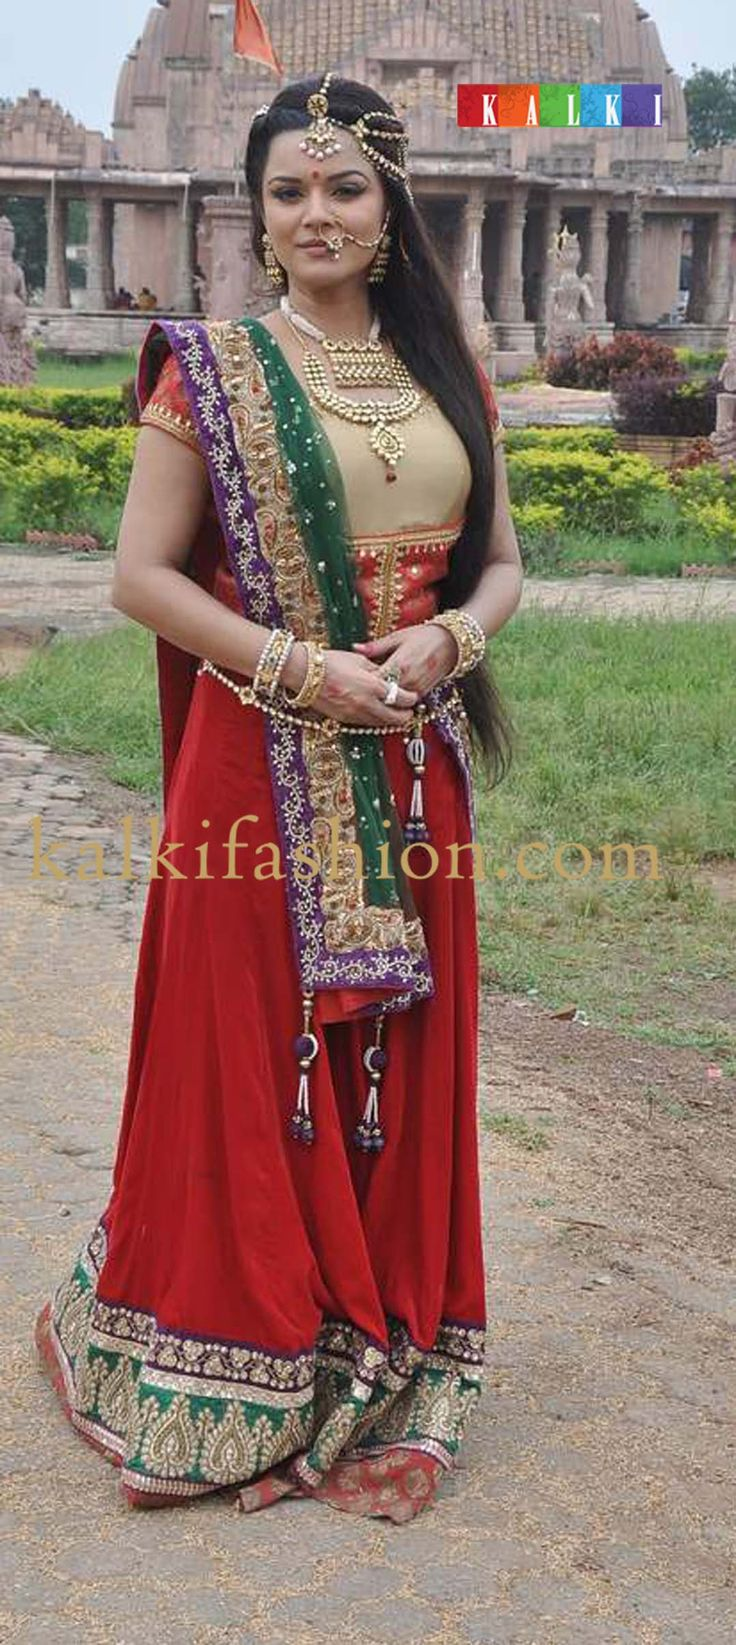 http://www.kalkifashion.com/  Aaskha Goradia in her costume in red lehenga with beige blouse on the set of Maharana Pratap.